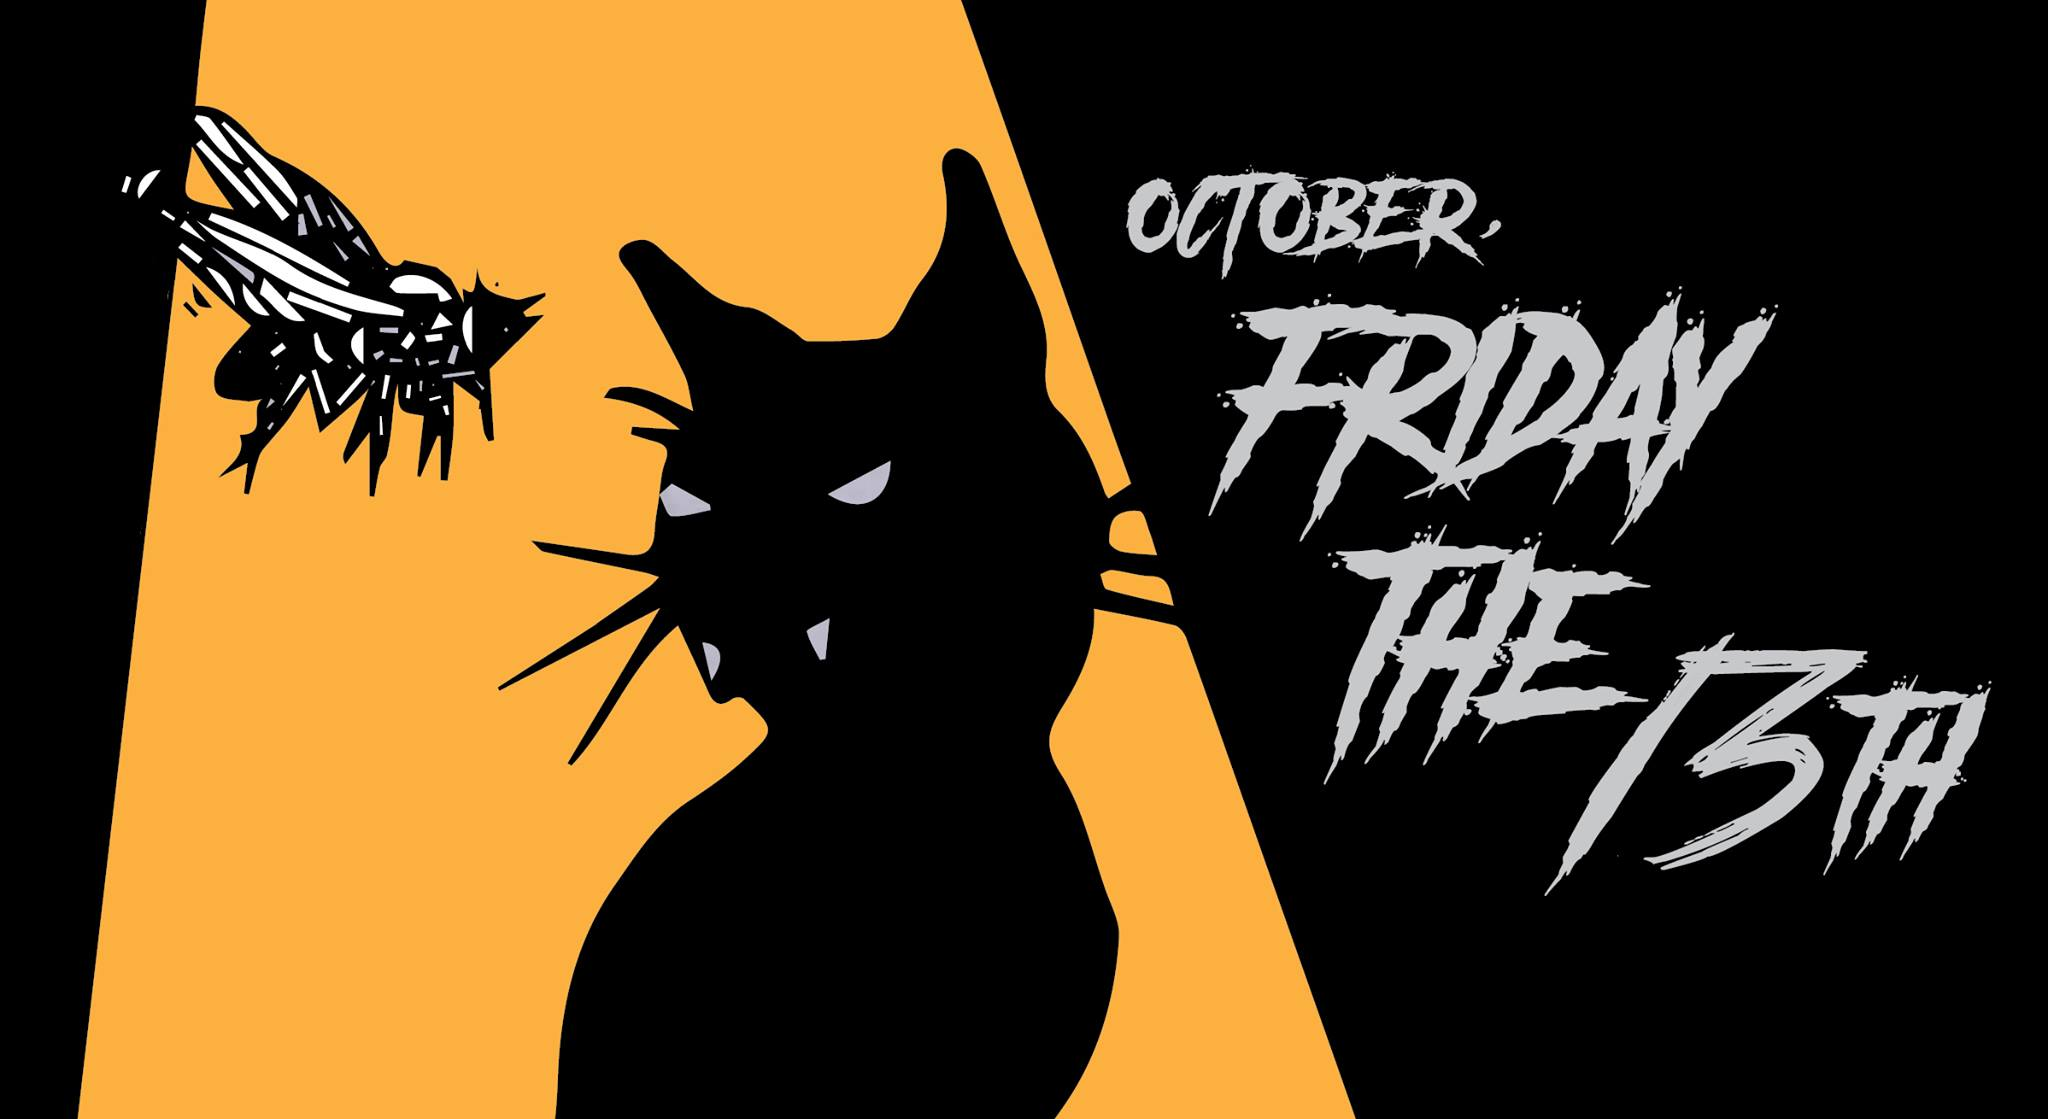 Cat Fly Friday the 13th Fest